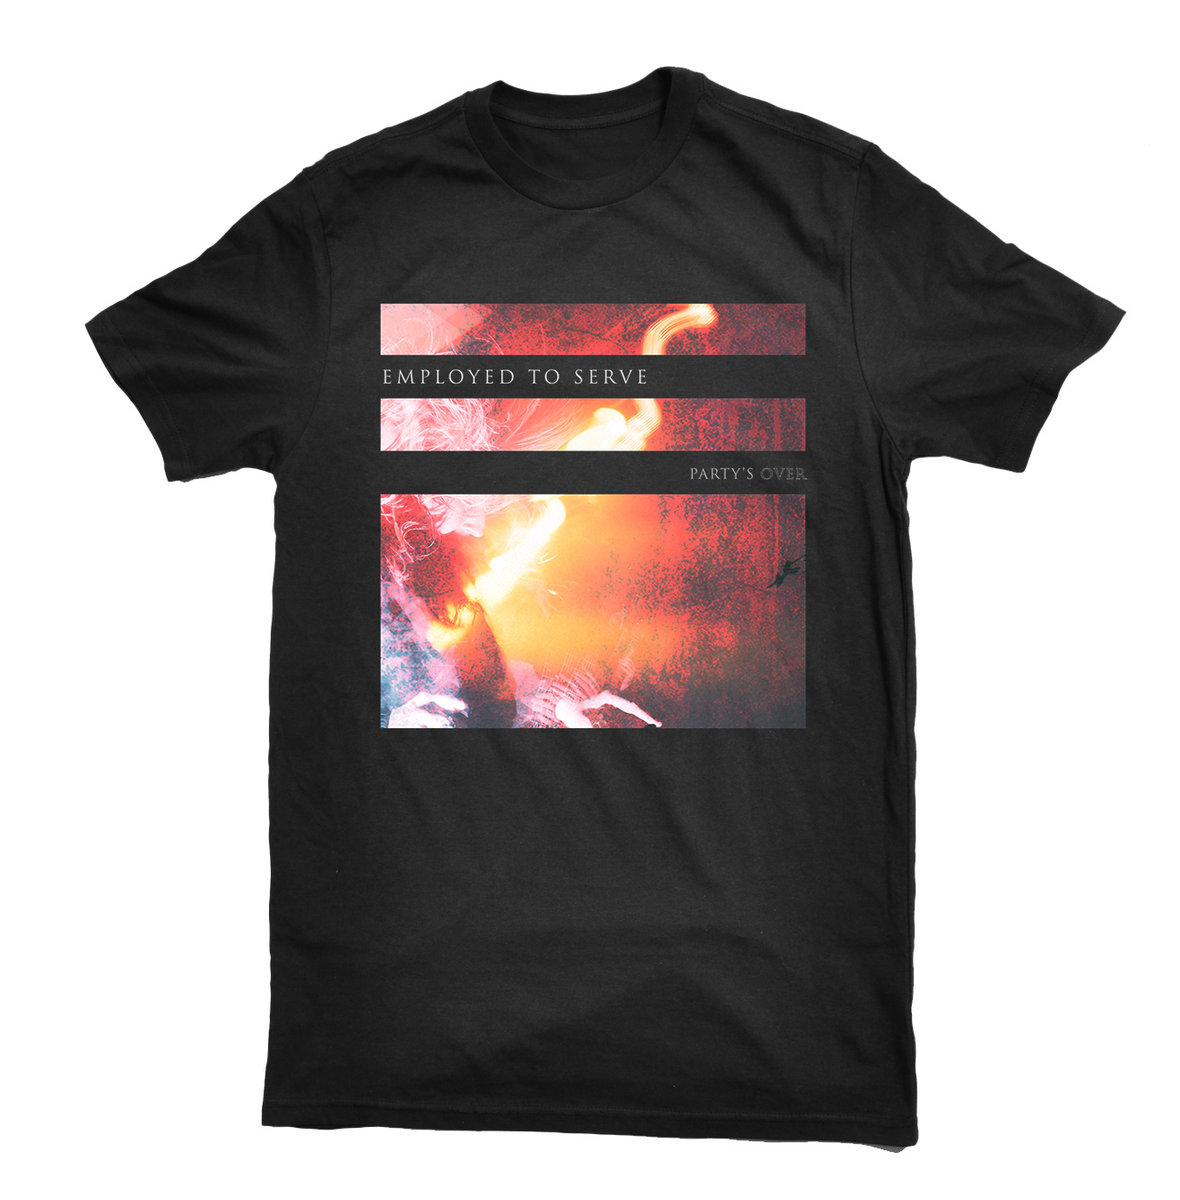 Party's over shirt